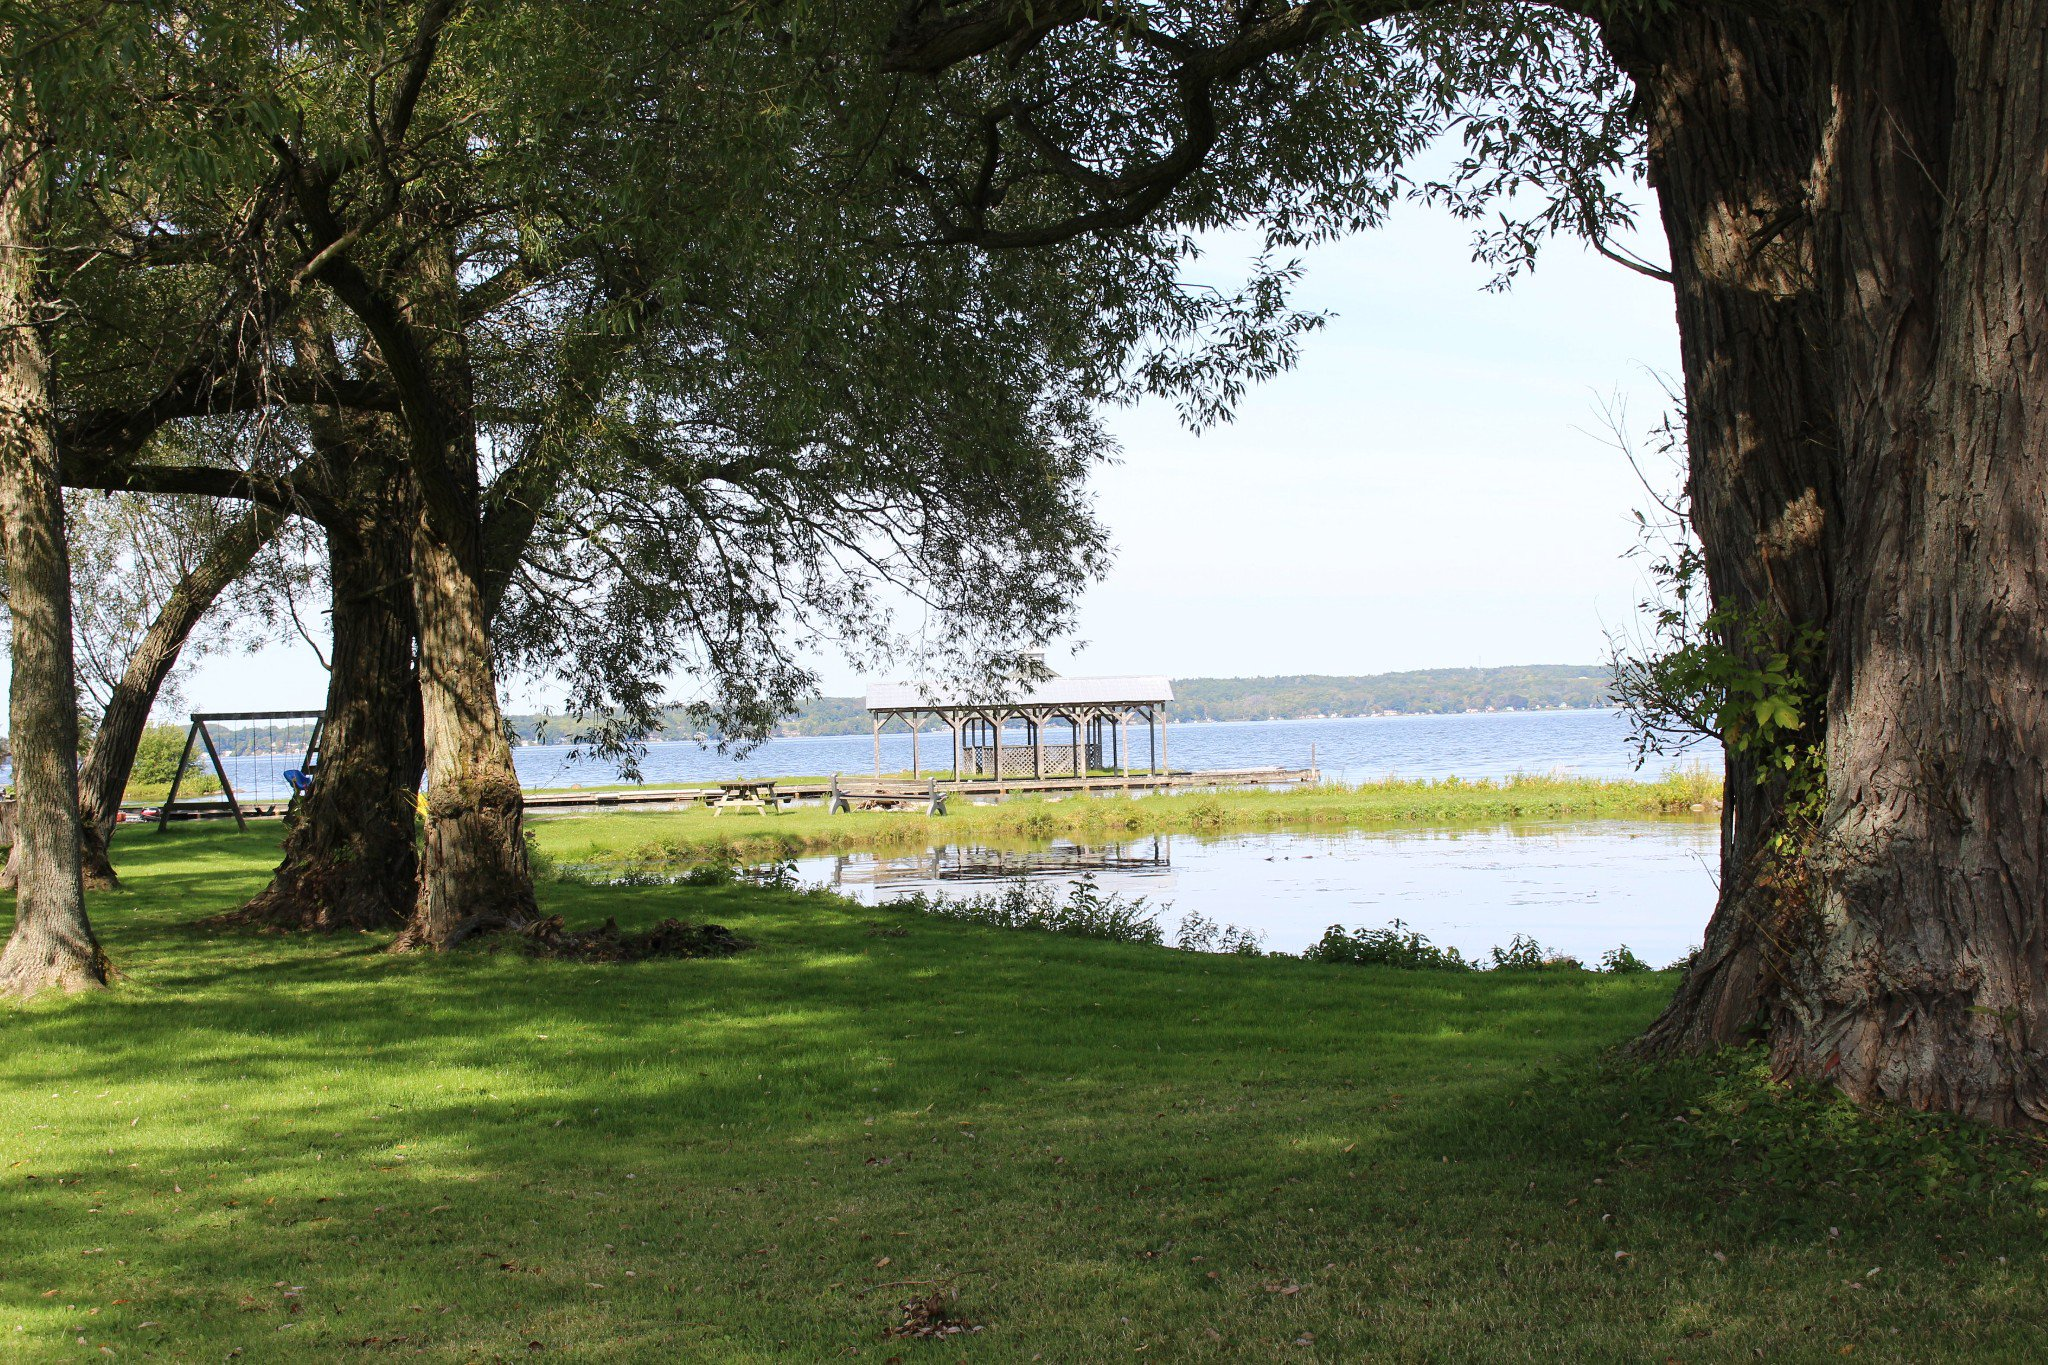 Photo 26: Photos: 6010 Rice Lake Scenic Drive in Harwood: Other for sale : MLS®# 223405